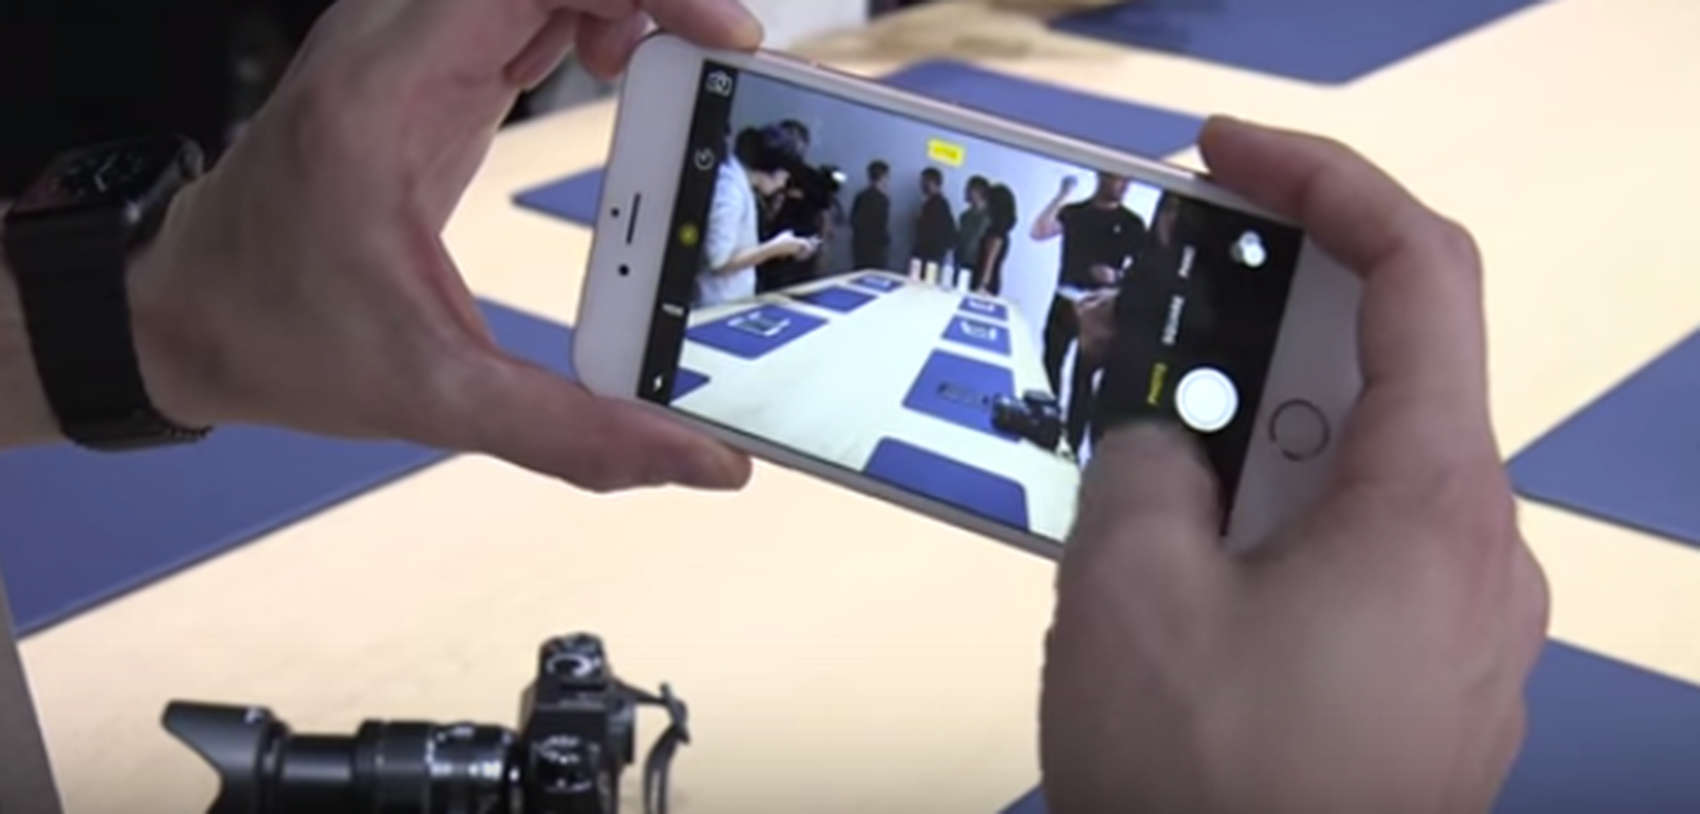 The new iPhone 6s in the hands of journalist during Apple's September event Wednesday.